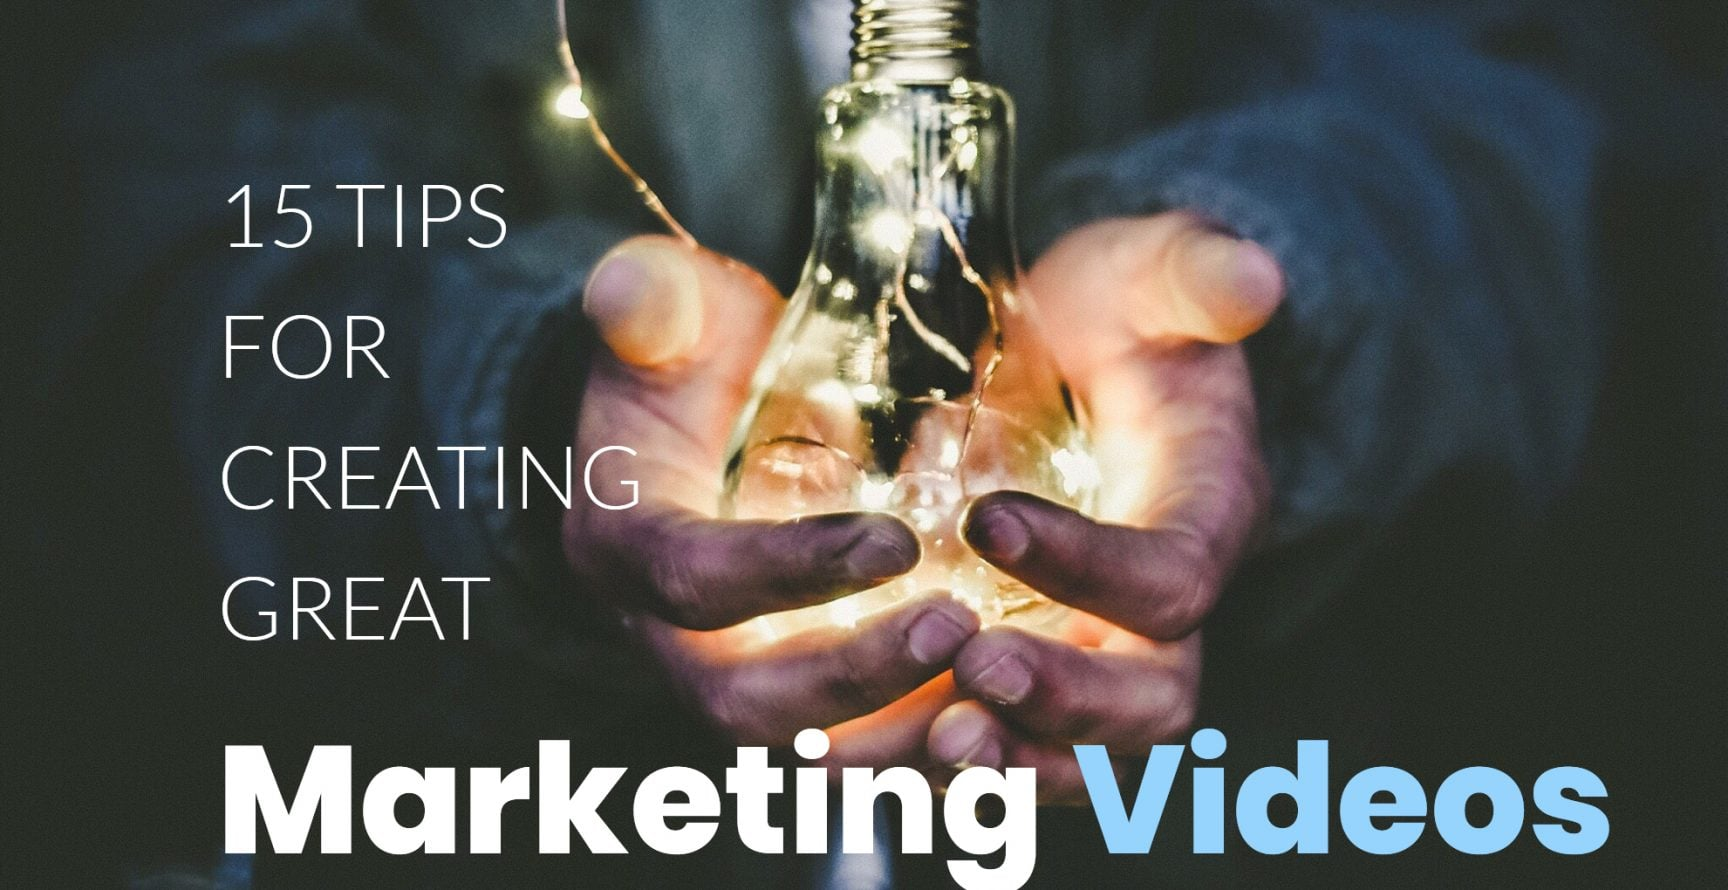 15 Tips for Creating Great Marketing Videos - Man holds light bulb